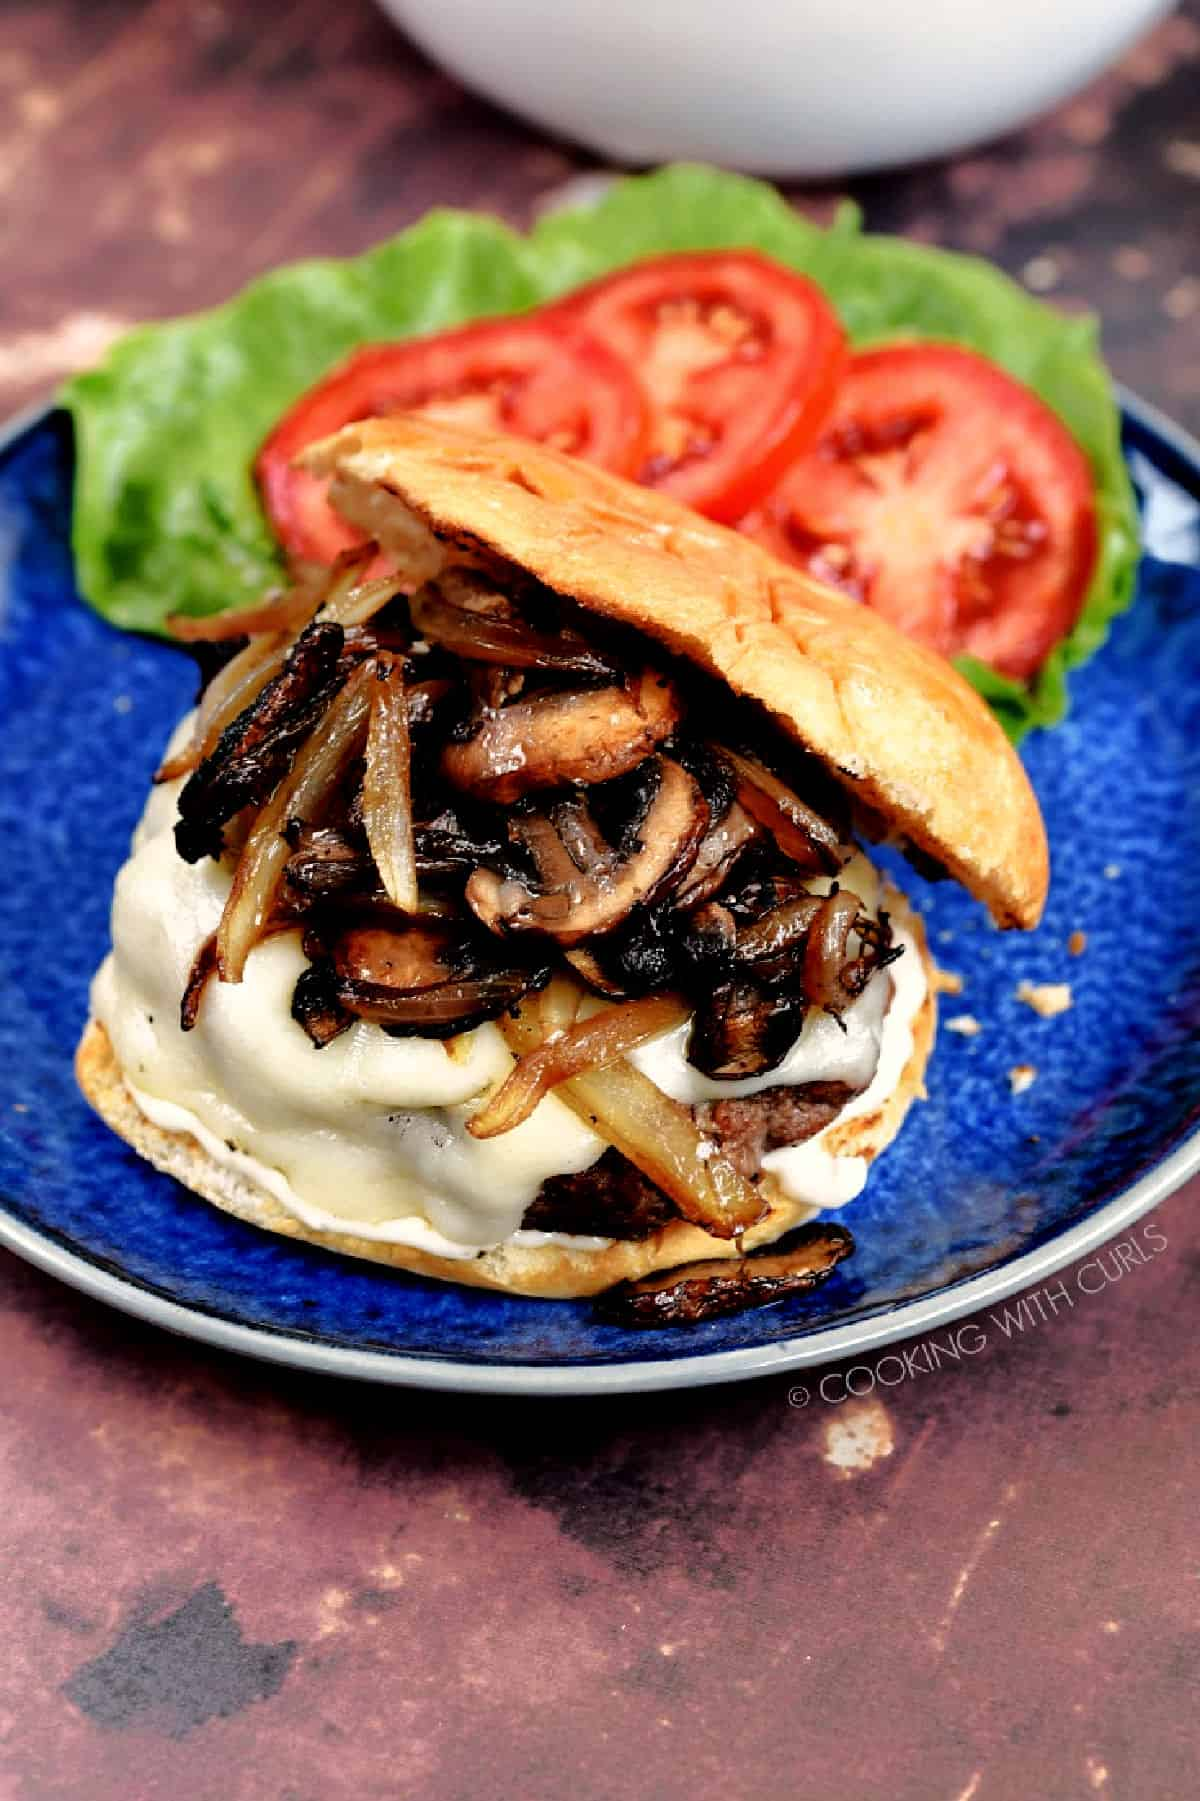 Mushroom Swiss Burgers on a blue plate with lettuce and tomato on the side.